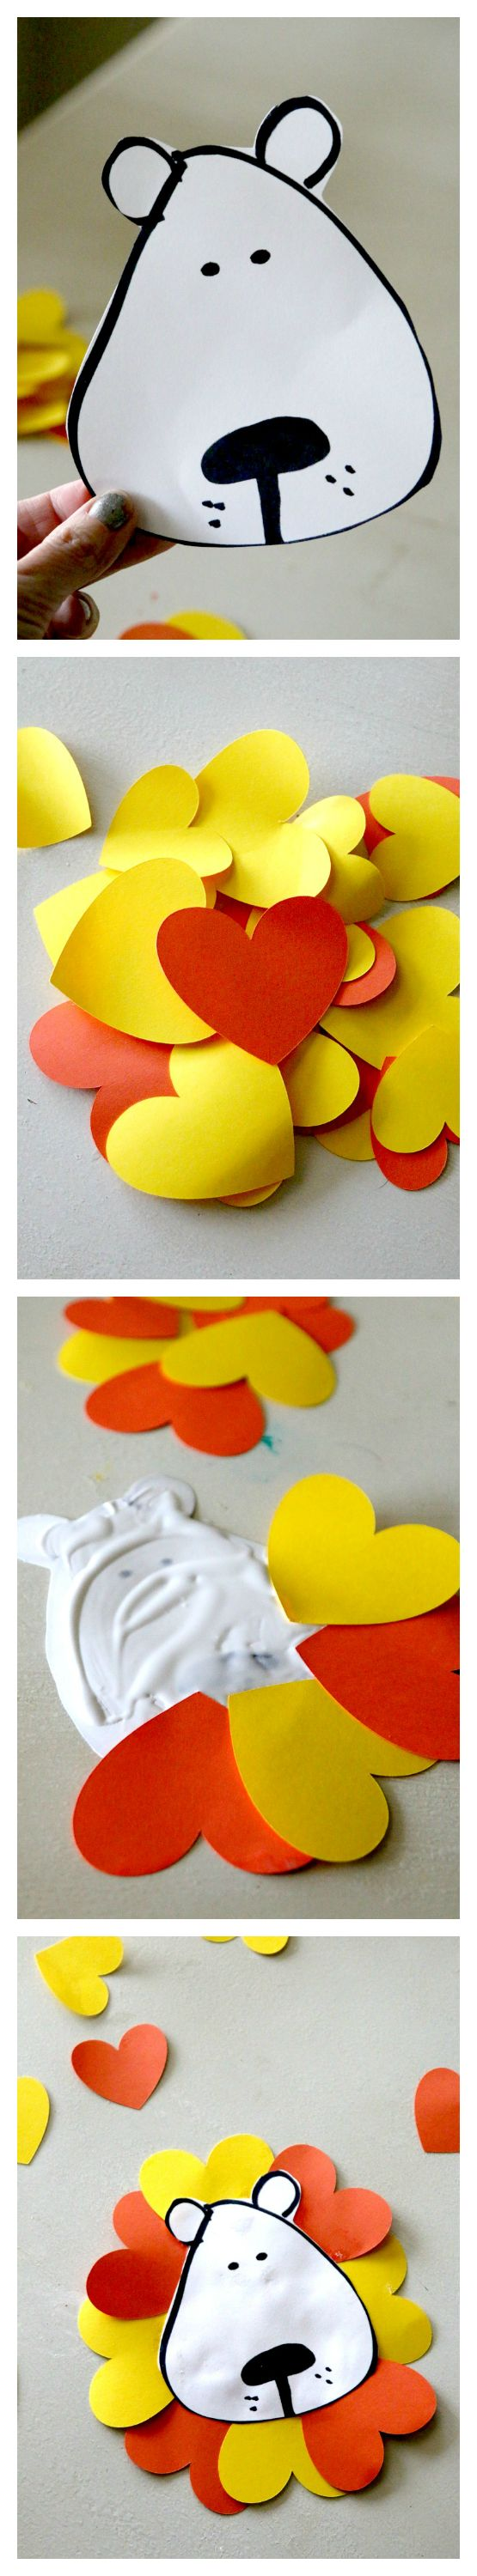 """Kids will adore this """"Heart of a Lion"""" Valentines Day Kids Crafting project, with 2 free PDF files for at home or classroom usage, 3 ideas with pictures! Paper Crafting is easy, fun, and inexpensive!"""